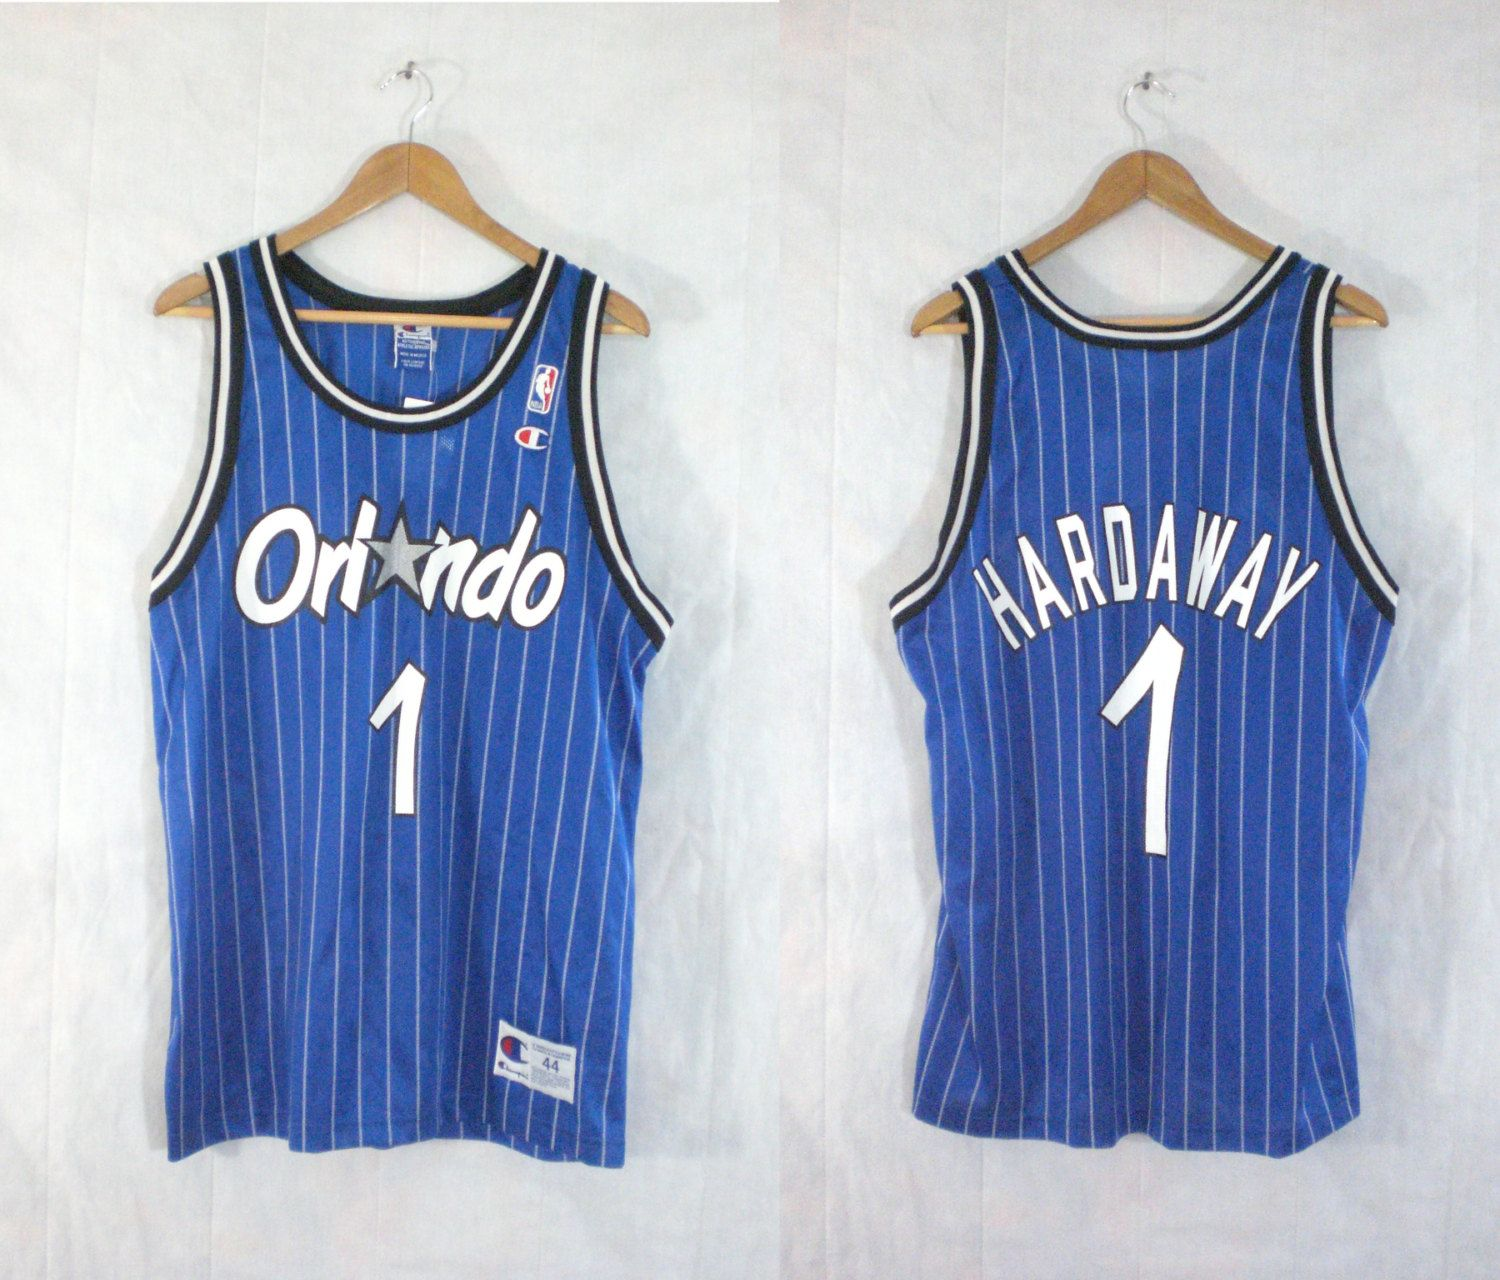 c3cb153e penny hardaway jersey size large. mens large. nba jersey. orlando magic  jersey. mint condition. basketball jersey by LondonVtg on Etsy